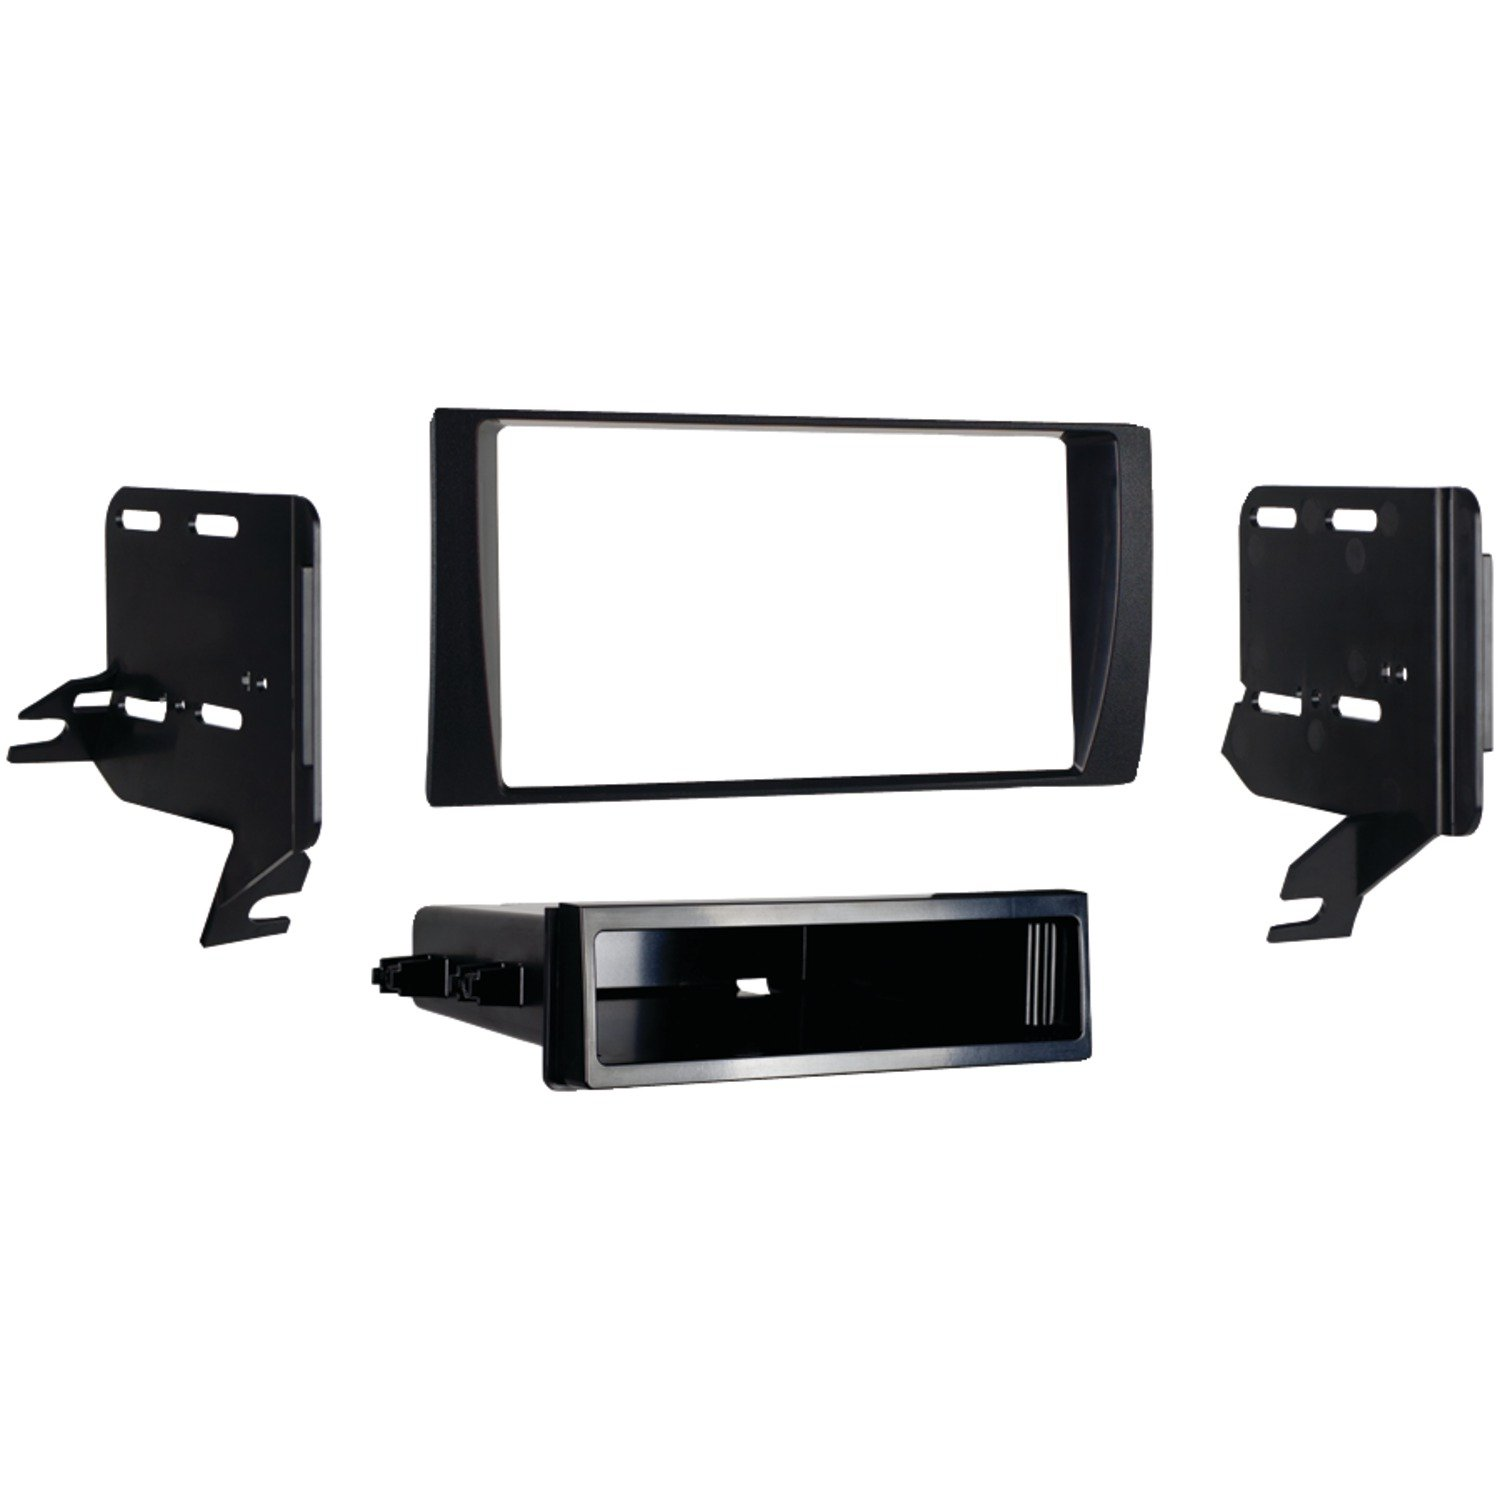 Metra 99-8231 Single or Double DIN Installation Dash Kit for 2002-2006 Toyota Camry